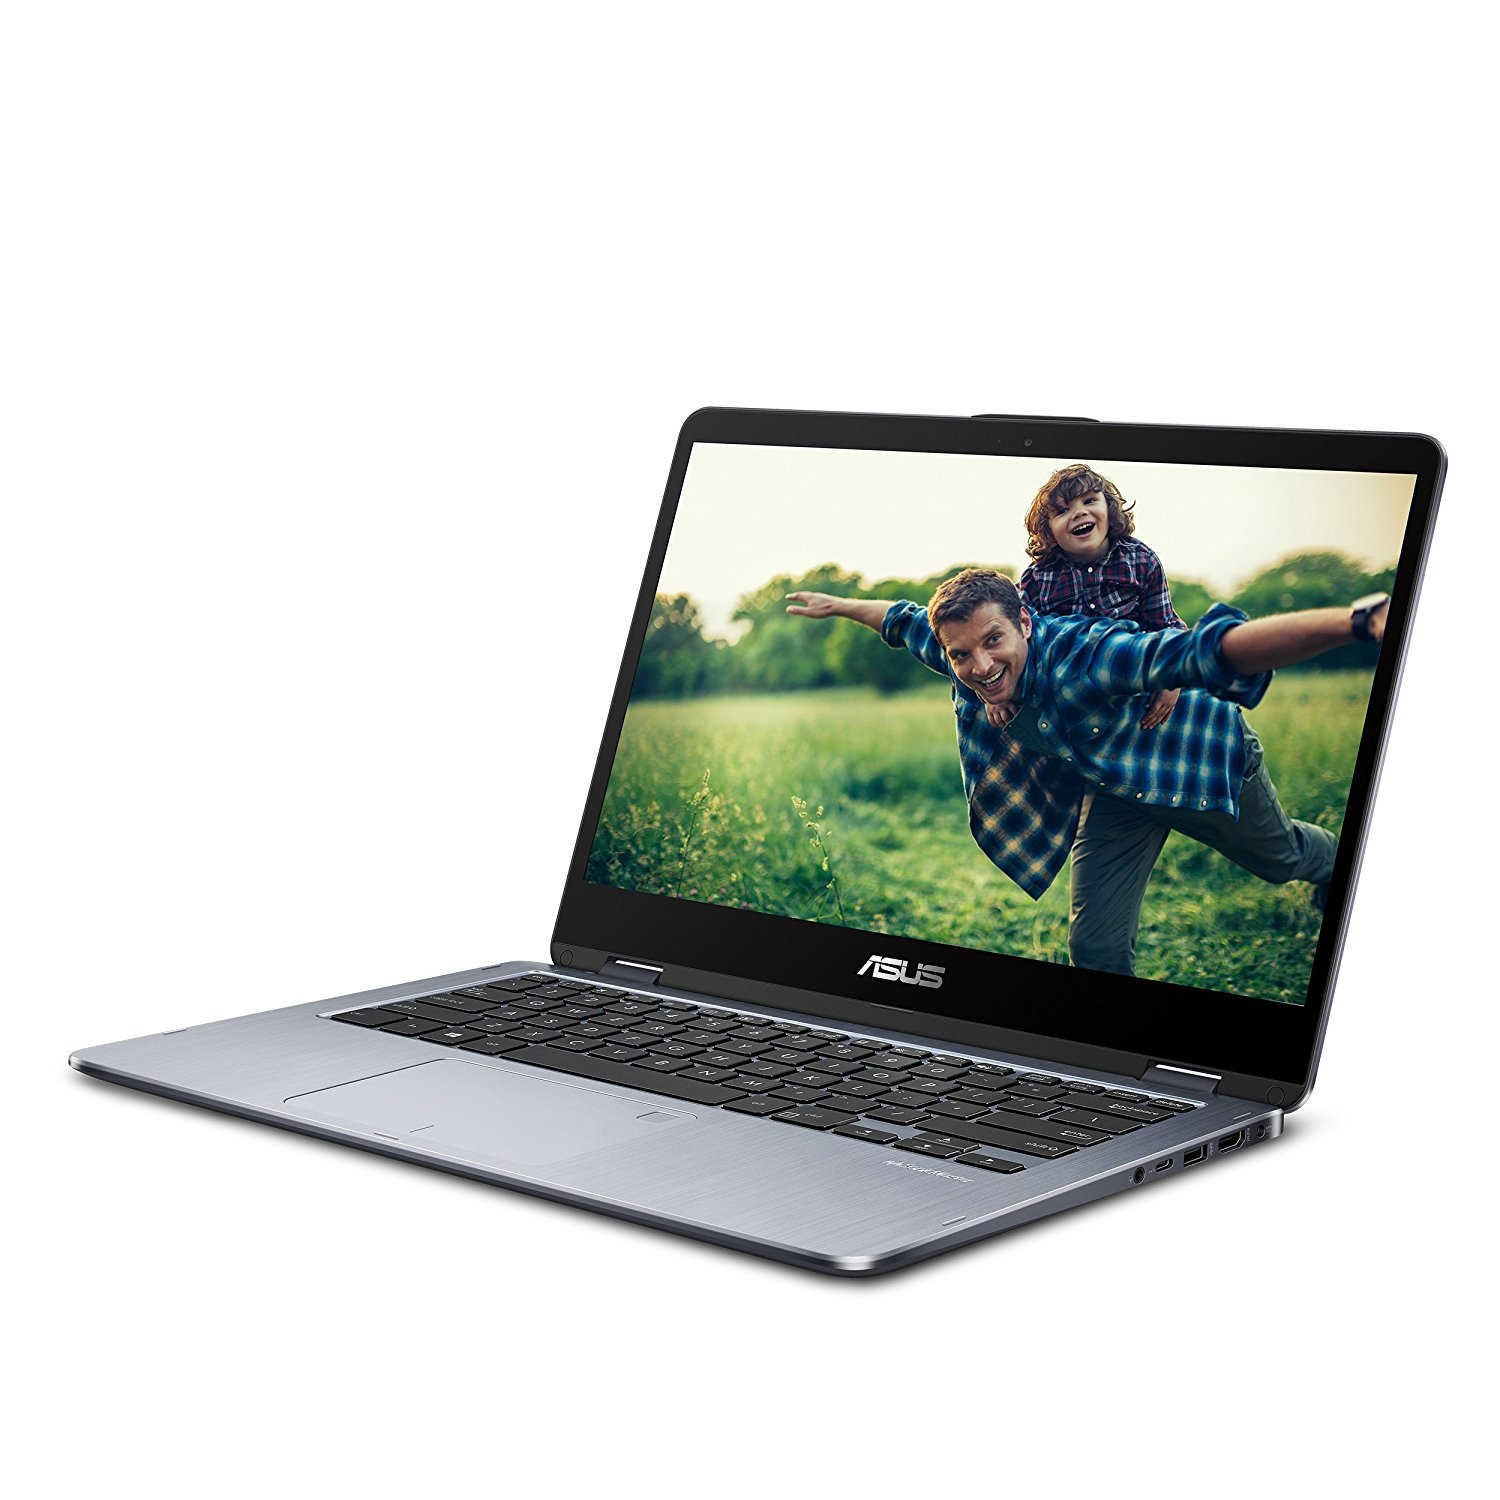 "Asus VivoBook Flip TP410UA-DB51T Core i5 7200U 6 GB 1 TB HDD 14"" Touchscreen 1920 x 1080 Convertible 2-in-1 Notebook"